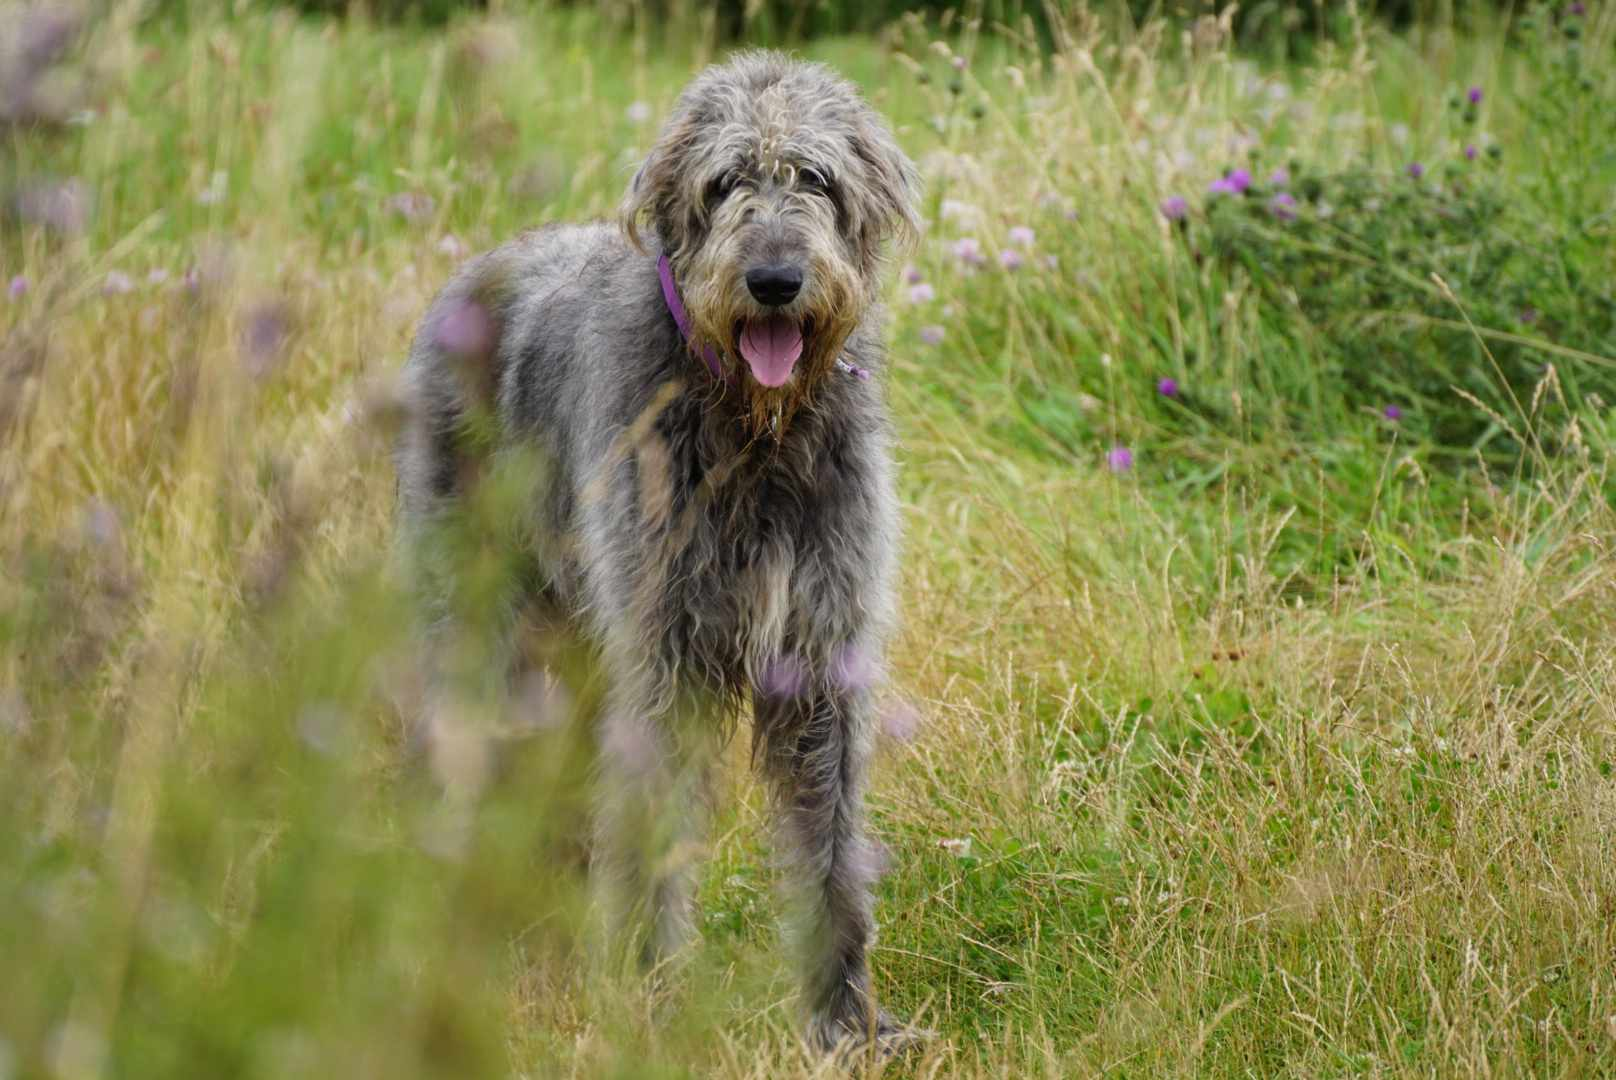 A big, shaggy, gray Irish Wolfhound in the grass and wildflowers.